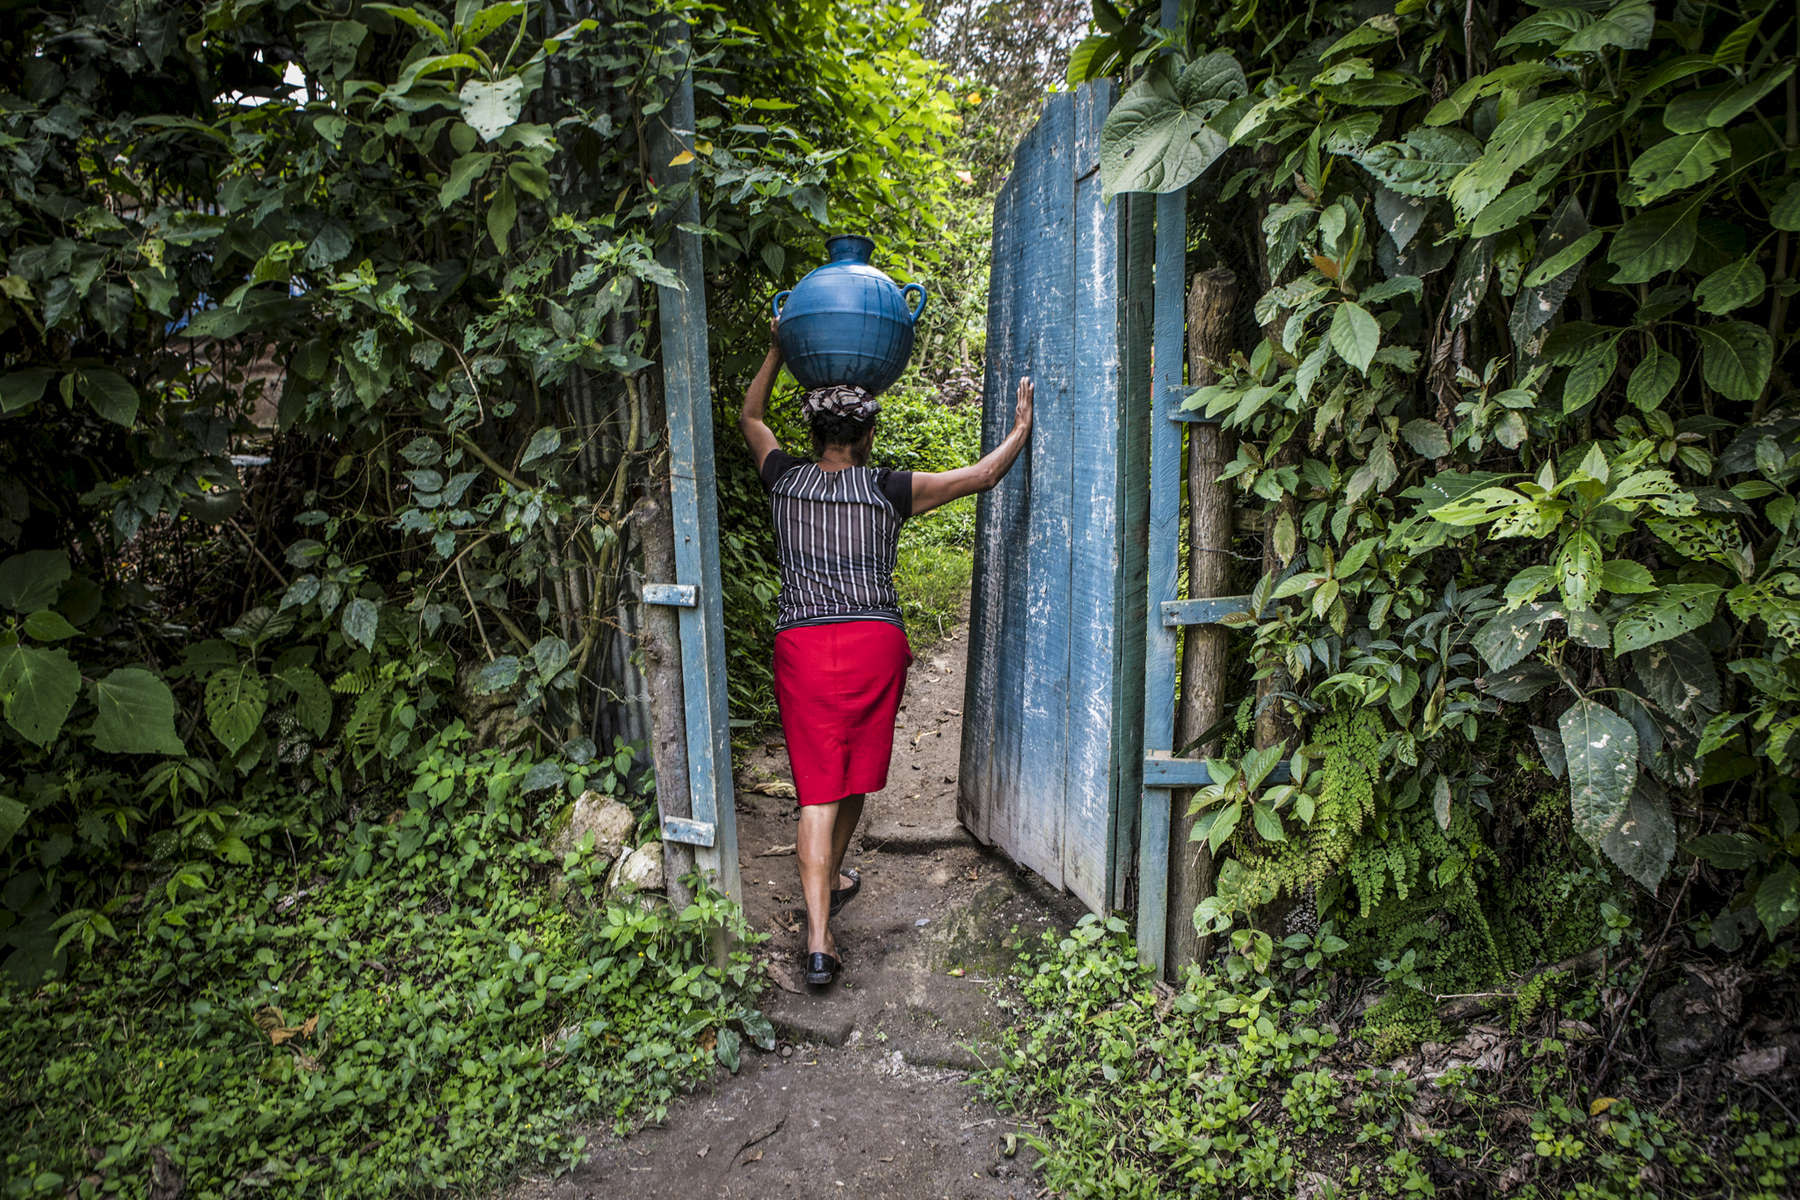 Nejapa, El Salvador- Zoila Ramirez, 40, carries a jug of water to her home in San Jeronimo Los Planes, Nejapa, El Salvador June 2018. Water is collected during the rainy season in the communal tank and sold for 10 cents a jug during the dry season, money raised is used to fund water trucks once the tank runs dry (usually the tank only lasts for two months into the dry season). Unfortunately the roof was lost during a recent hurricane and very little water has been collected since, worrying the Perez family. Nejapa is not only home to a number of bottling plants including Coca Cola and Lactolac, it also lies above one of El Salvador's largest aquifers, feeding neighboring communities and much of San Salvador.The San Antonio River, once a main source of water for Nejapa, has been contaminated by the waste produced by industrial bottling plants since their arrival in 1996. Bio filtration systems were installed but have been broken since 2006.  (Jane Hahn)